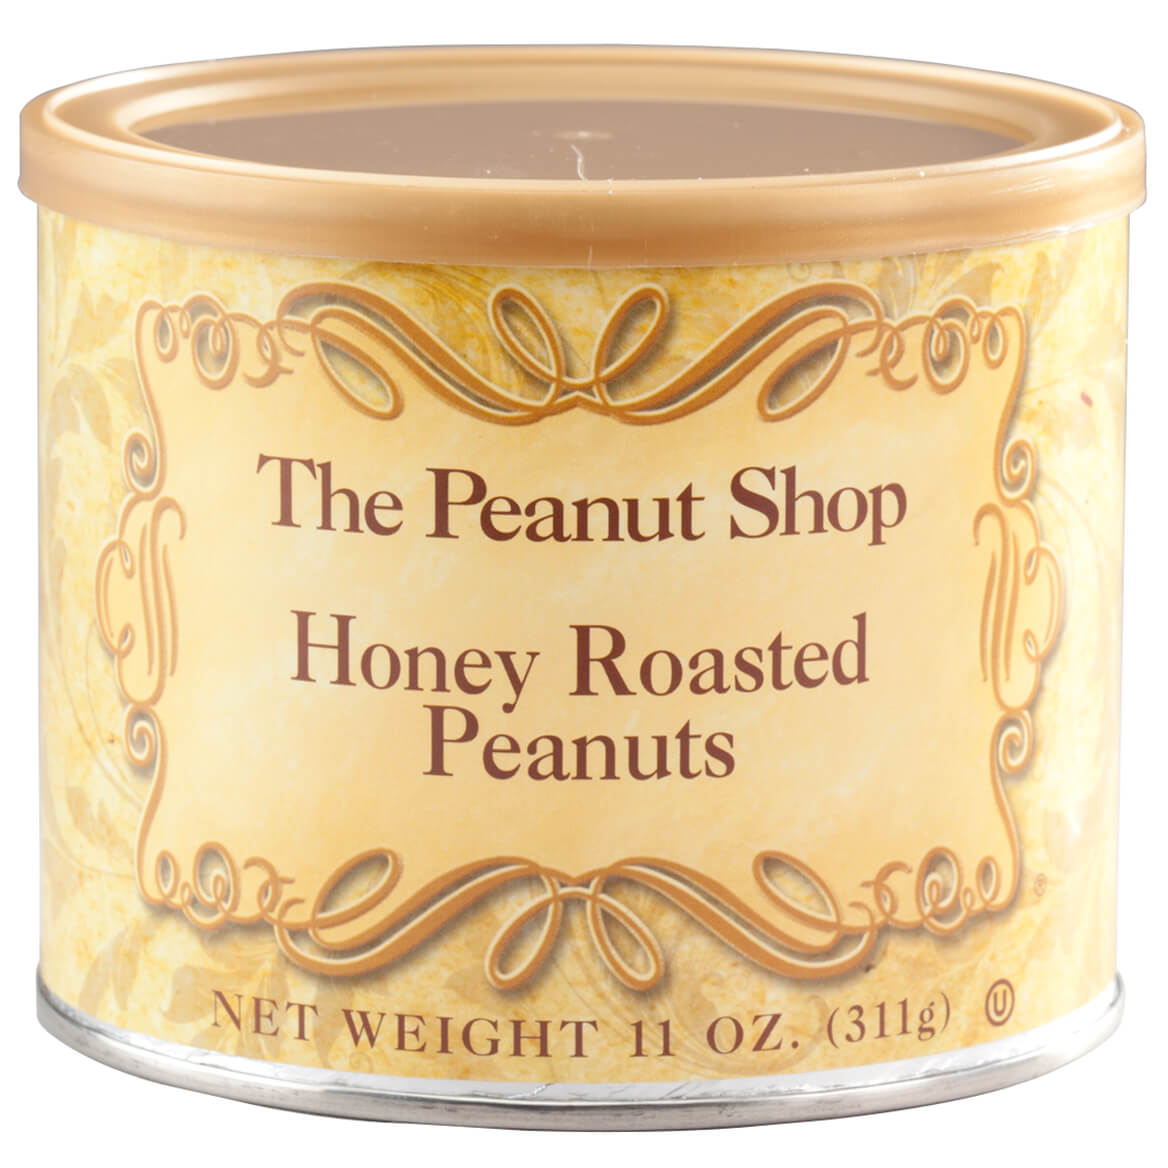 The Peanut Shop® Honey Roasted Peanuts, 11oz.